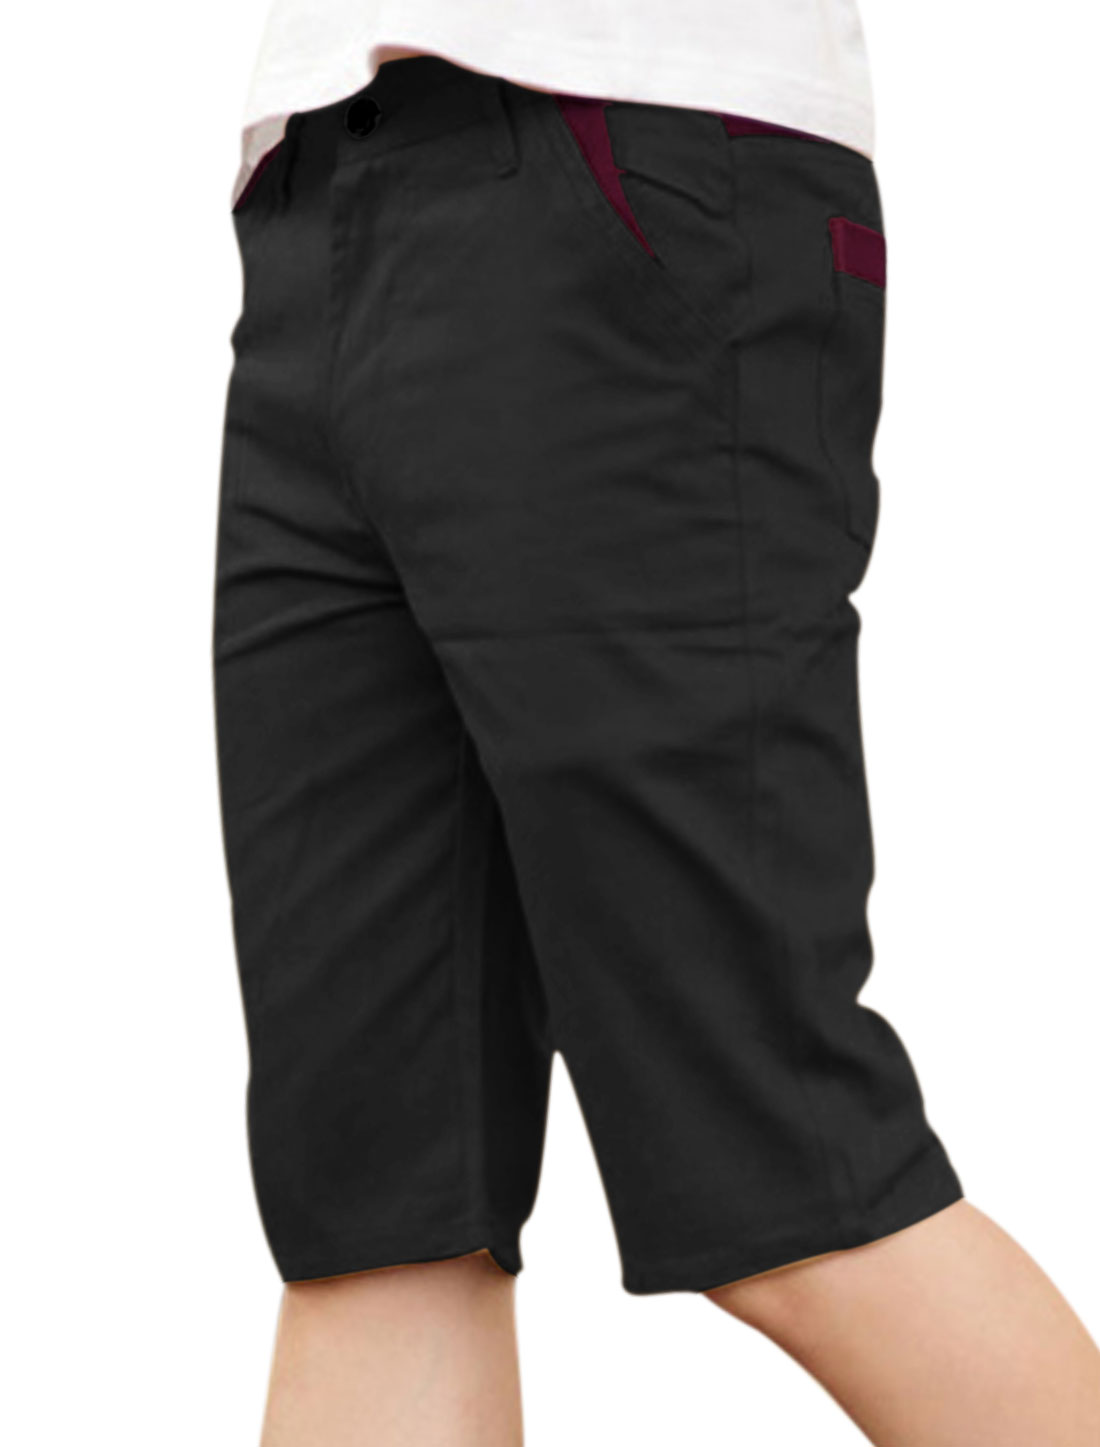 Men Belt Loop Zip Fly Panel Design Short Pants Black W32